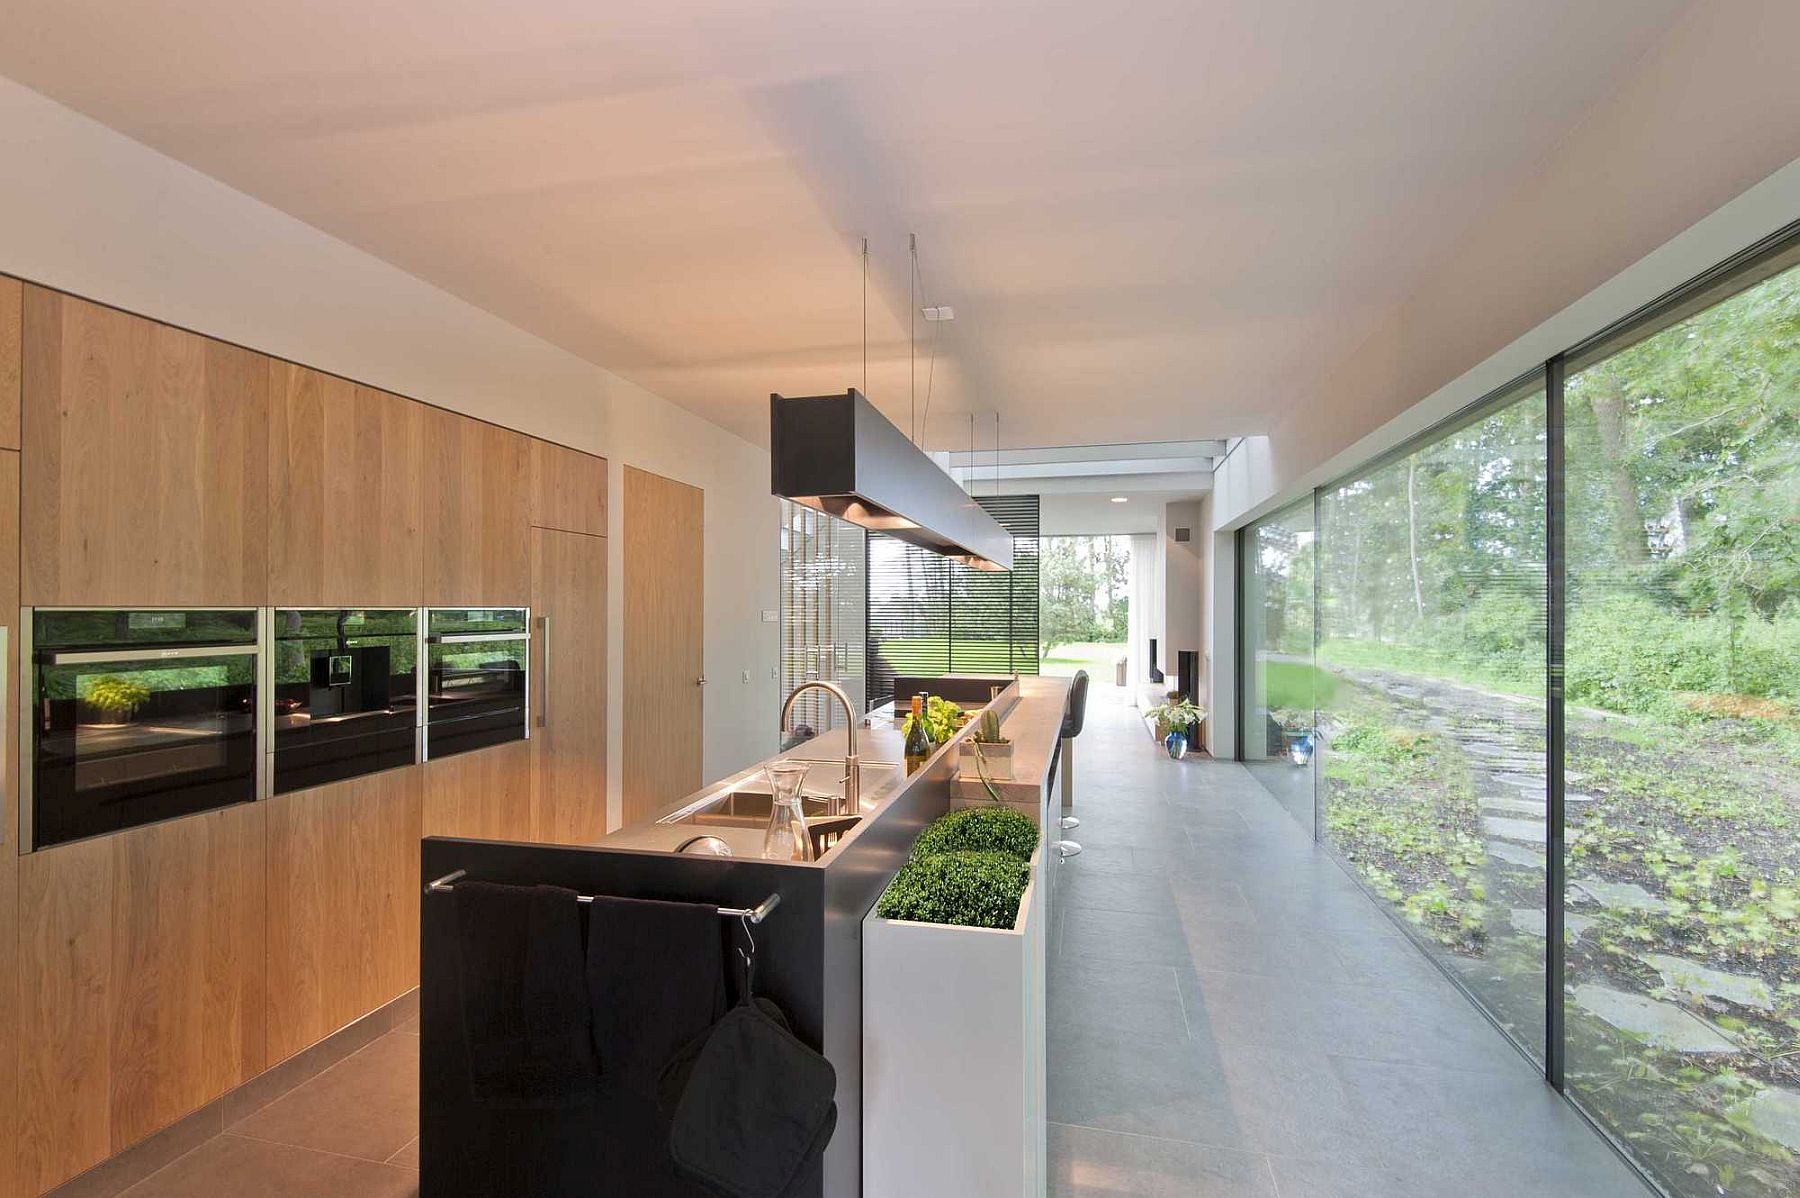 Large floor-to-ceiling glass windows offer panoramic views of the forest from the kitchen